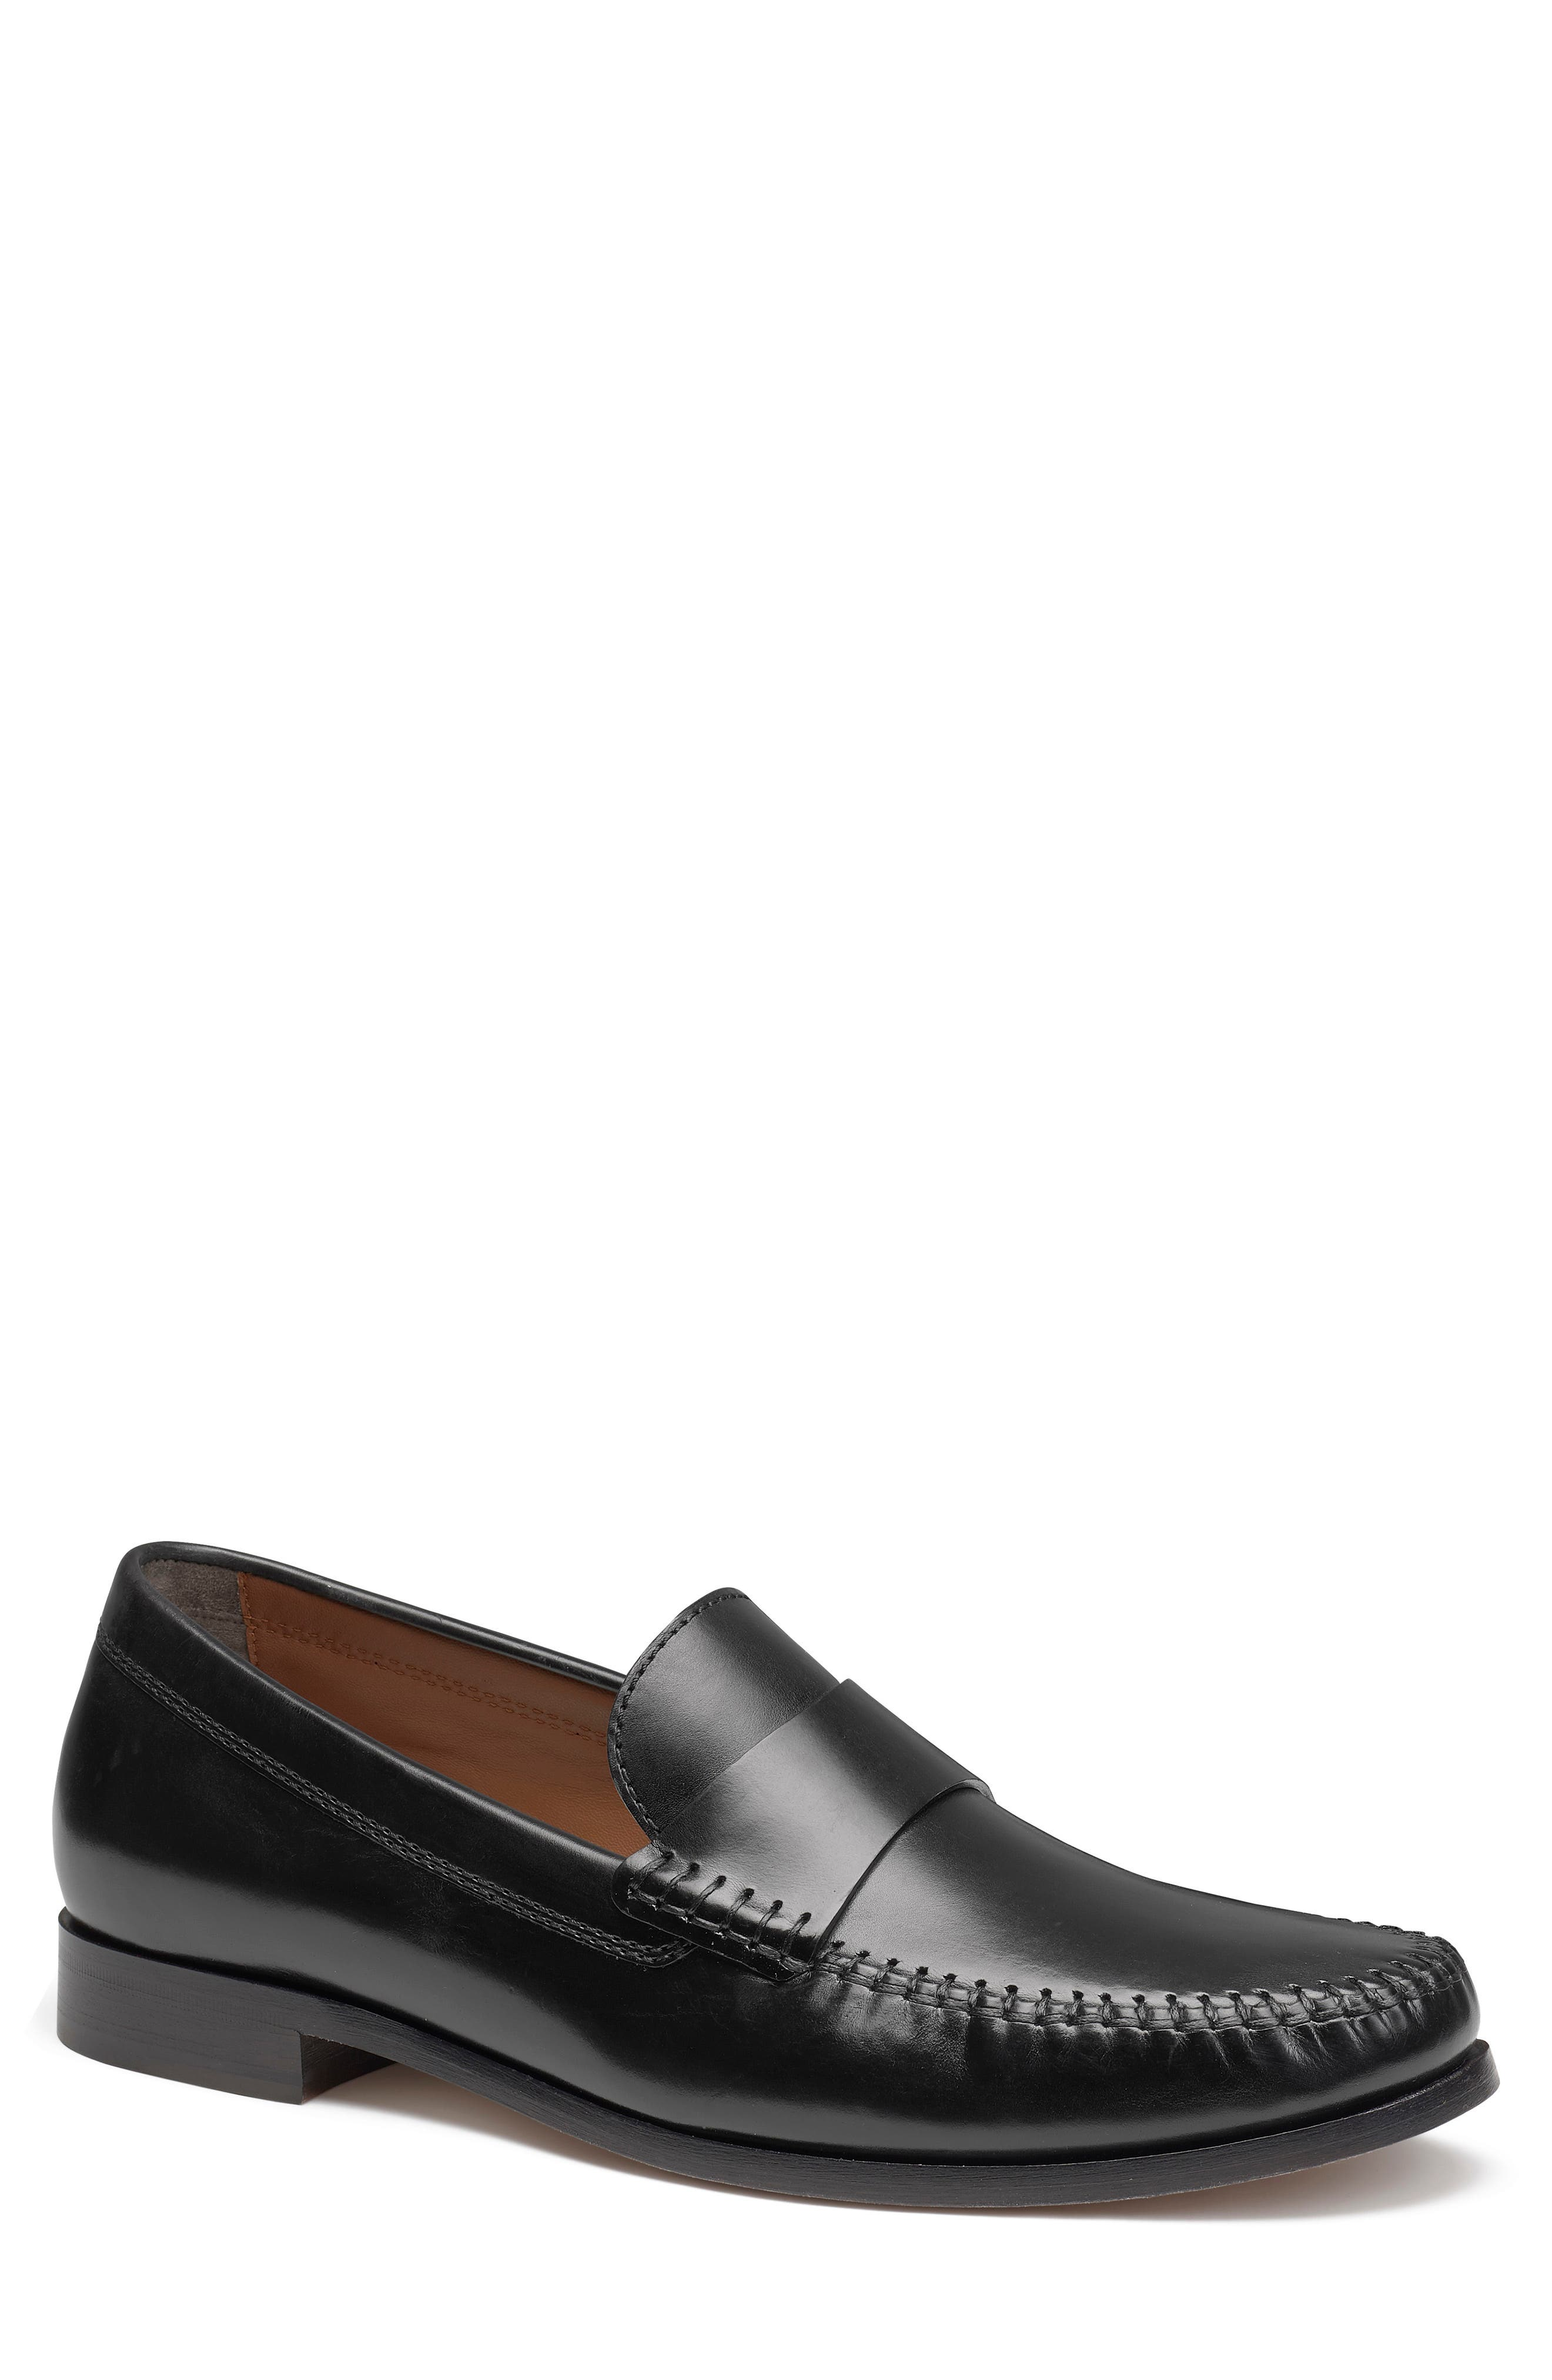 A saddle strap without the slit brings a modern, streamlined finish to this handsewn Italian-leather loafer with comfortable cushioning. Style Name: Trask Sutton Penny Loafer (Men). Style Number: 6006273 1. Available in stores.